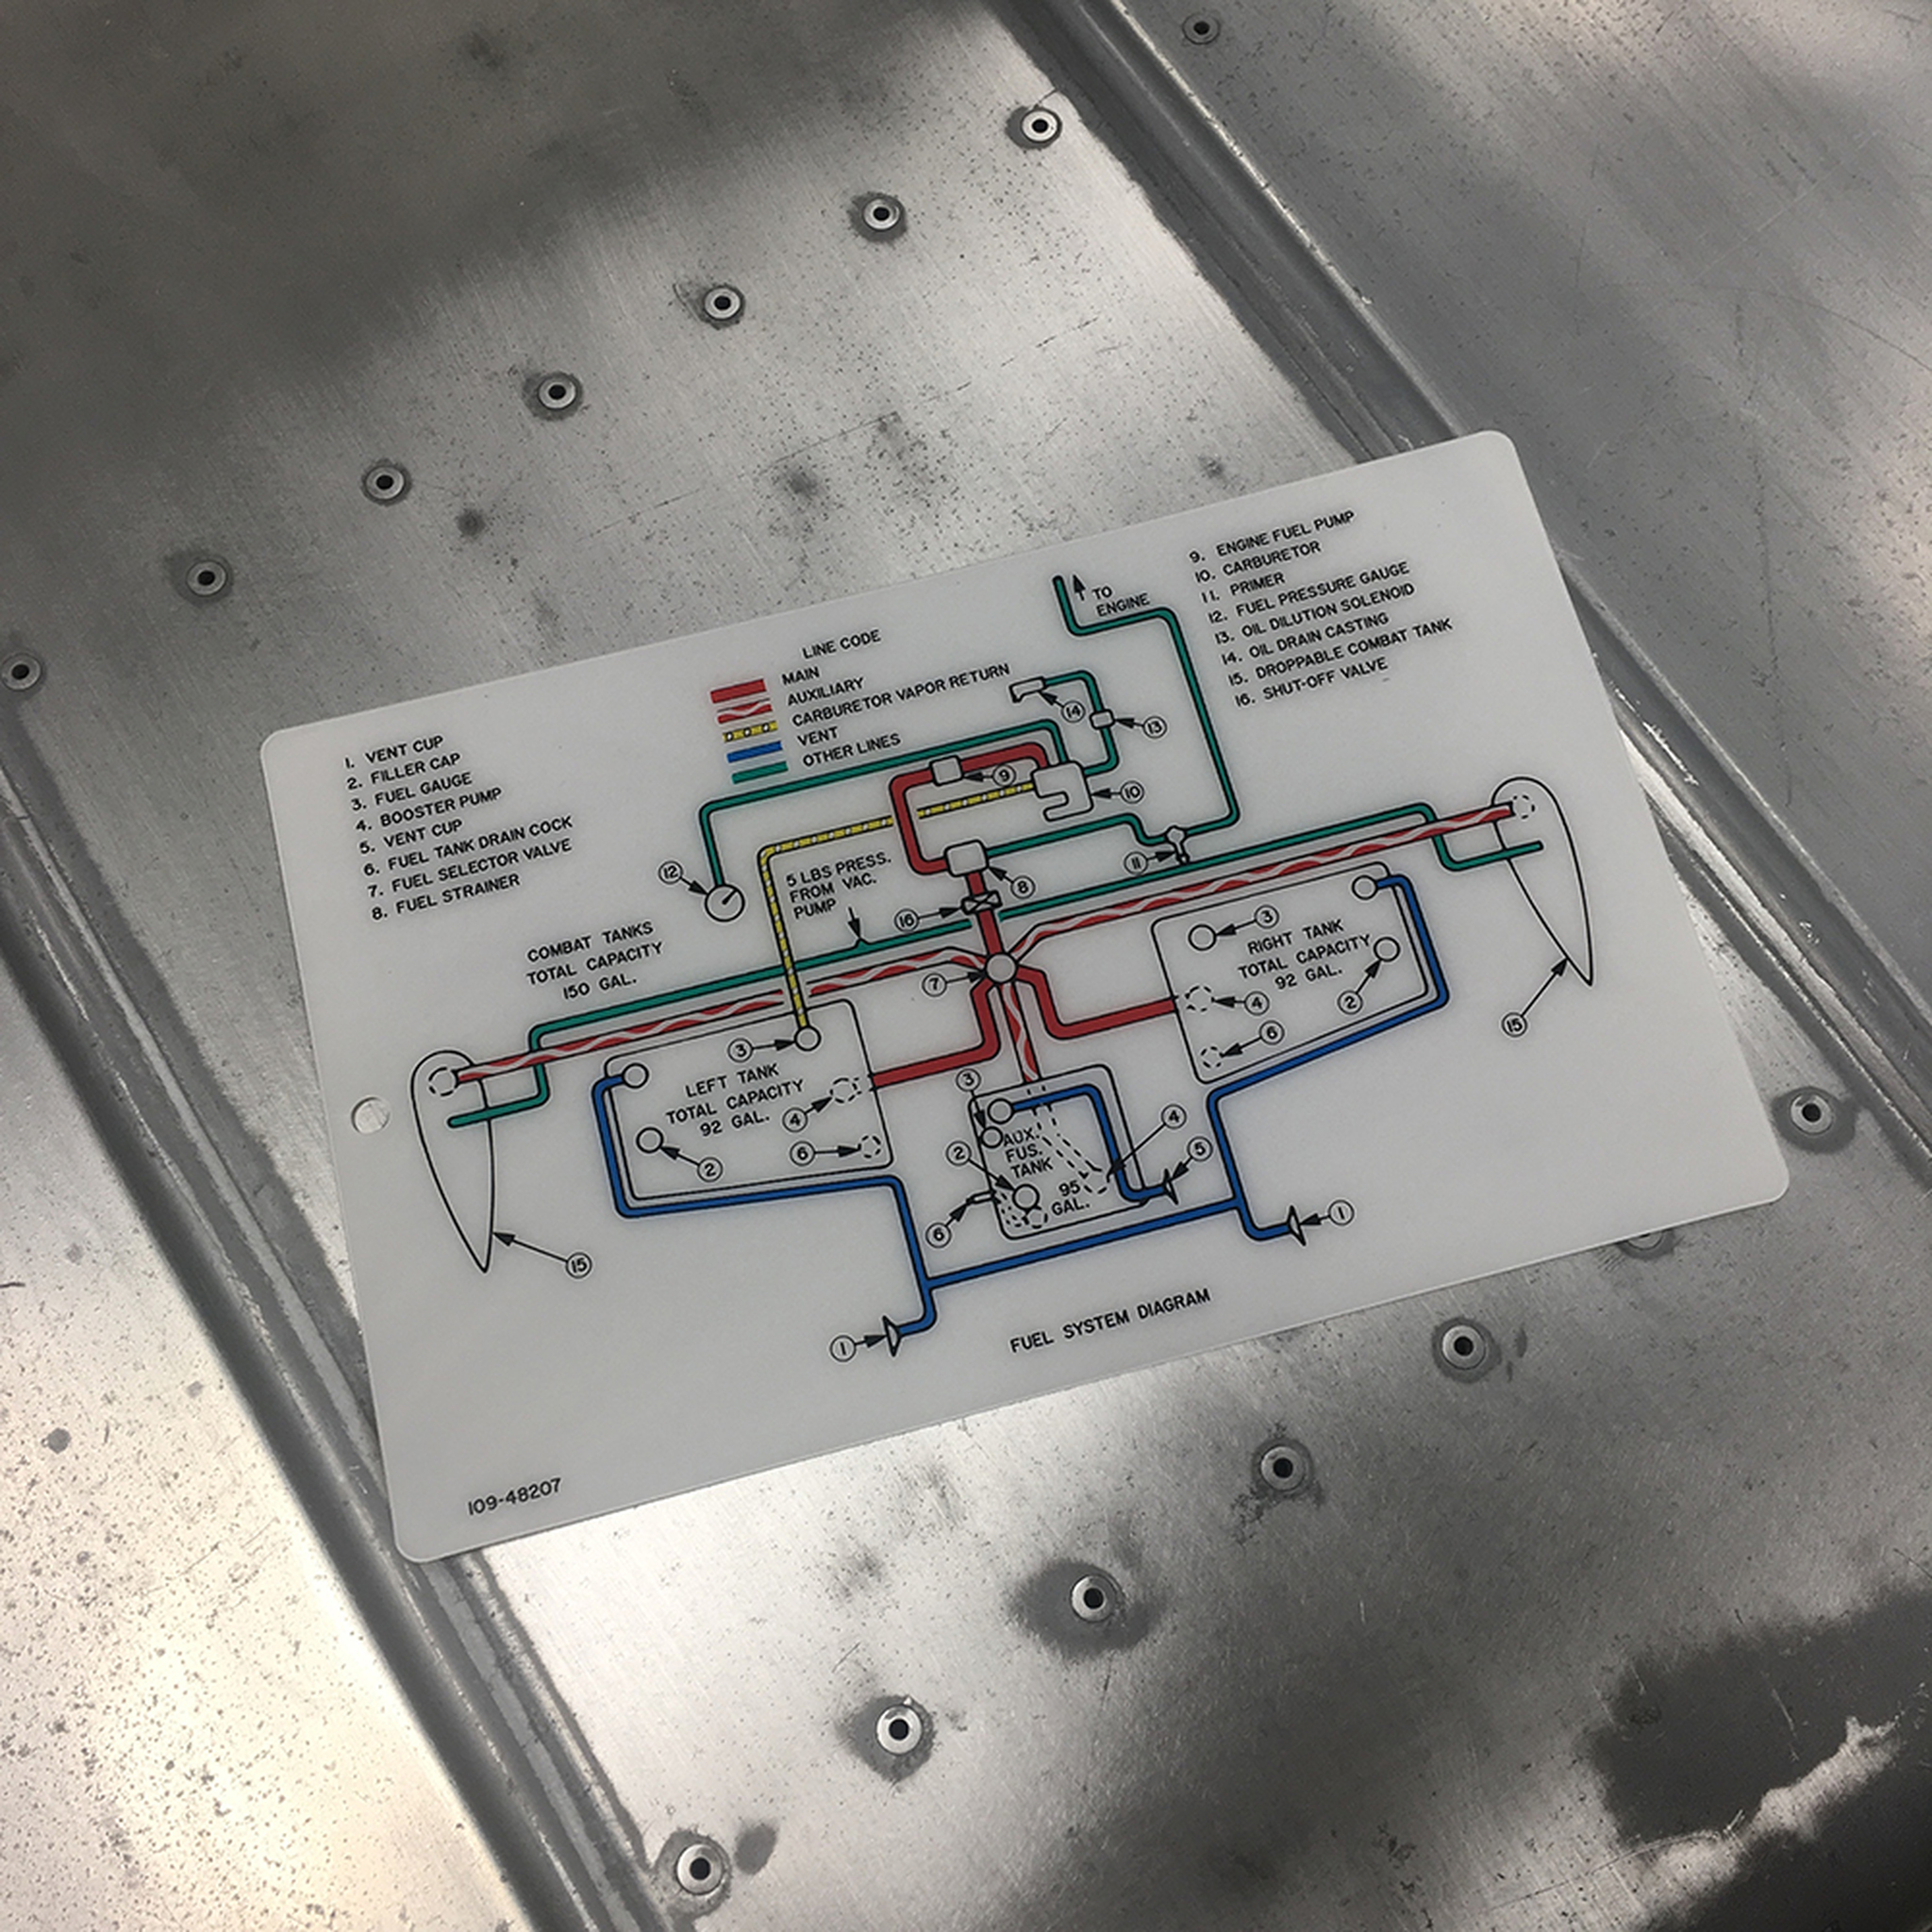 109-48207 Fuel System Diagram Data Card Full Color - P-51 Mustang on